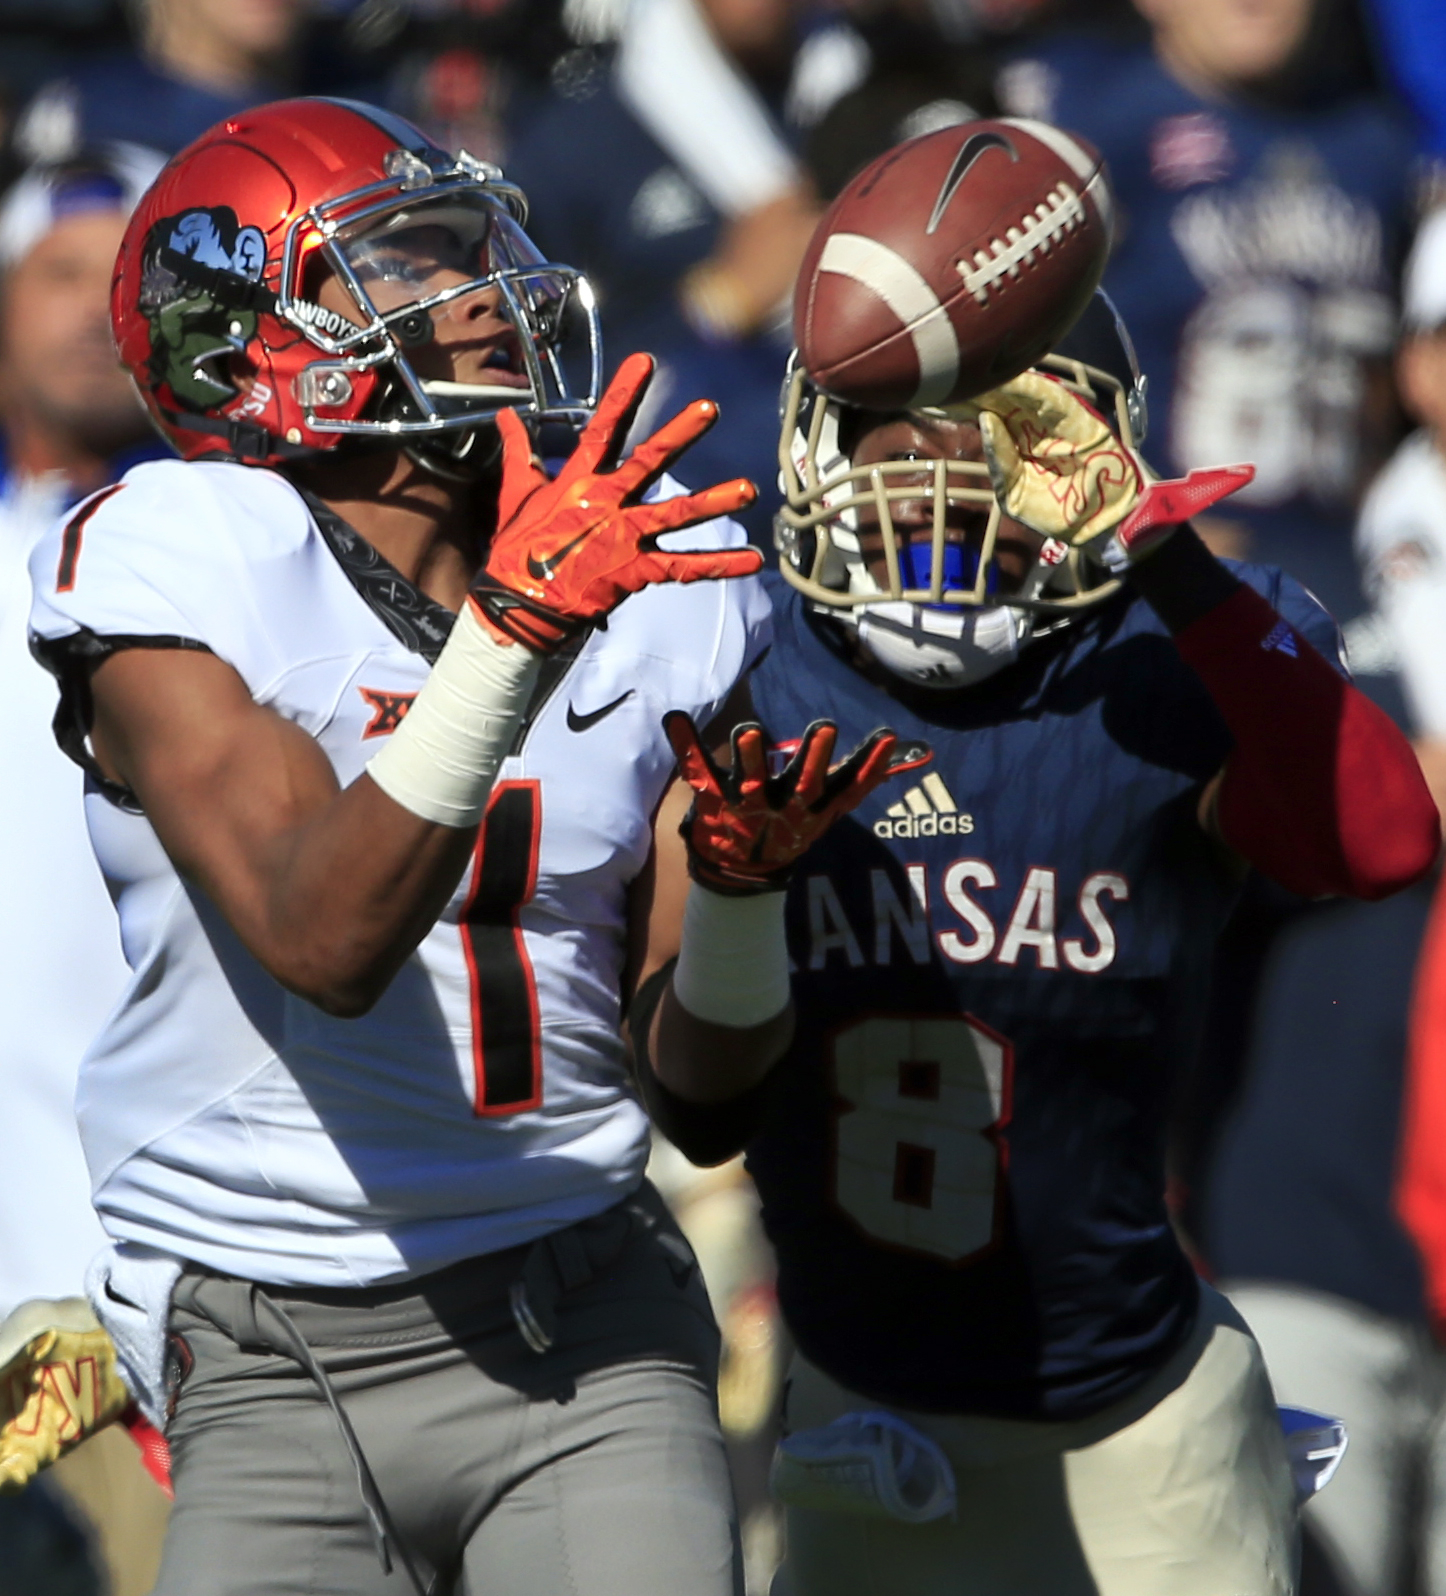 Oklahoma State wide receiver Jalen McCleskey (1) catches a pass while covered by Kansas cornerback Brandon Stewart (8) during the first half of an NCAA college football game in Lawrence, Kan., Saturday, Oct. 22, 2016. (AP Photo/Orlin Wagner)